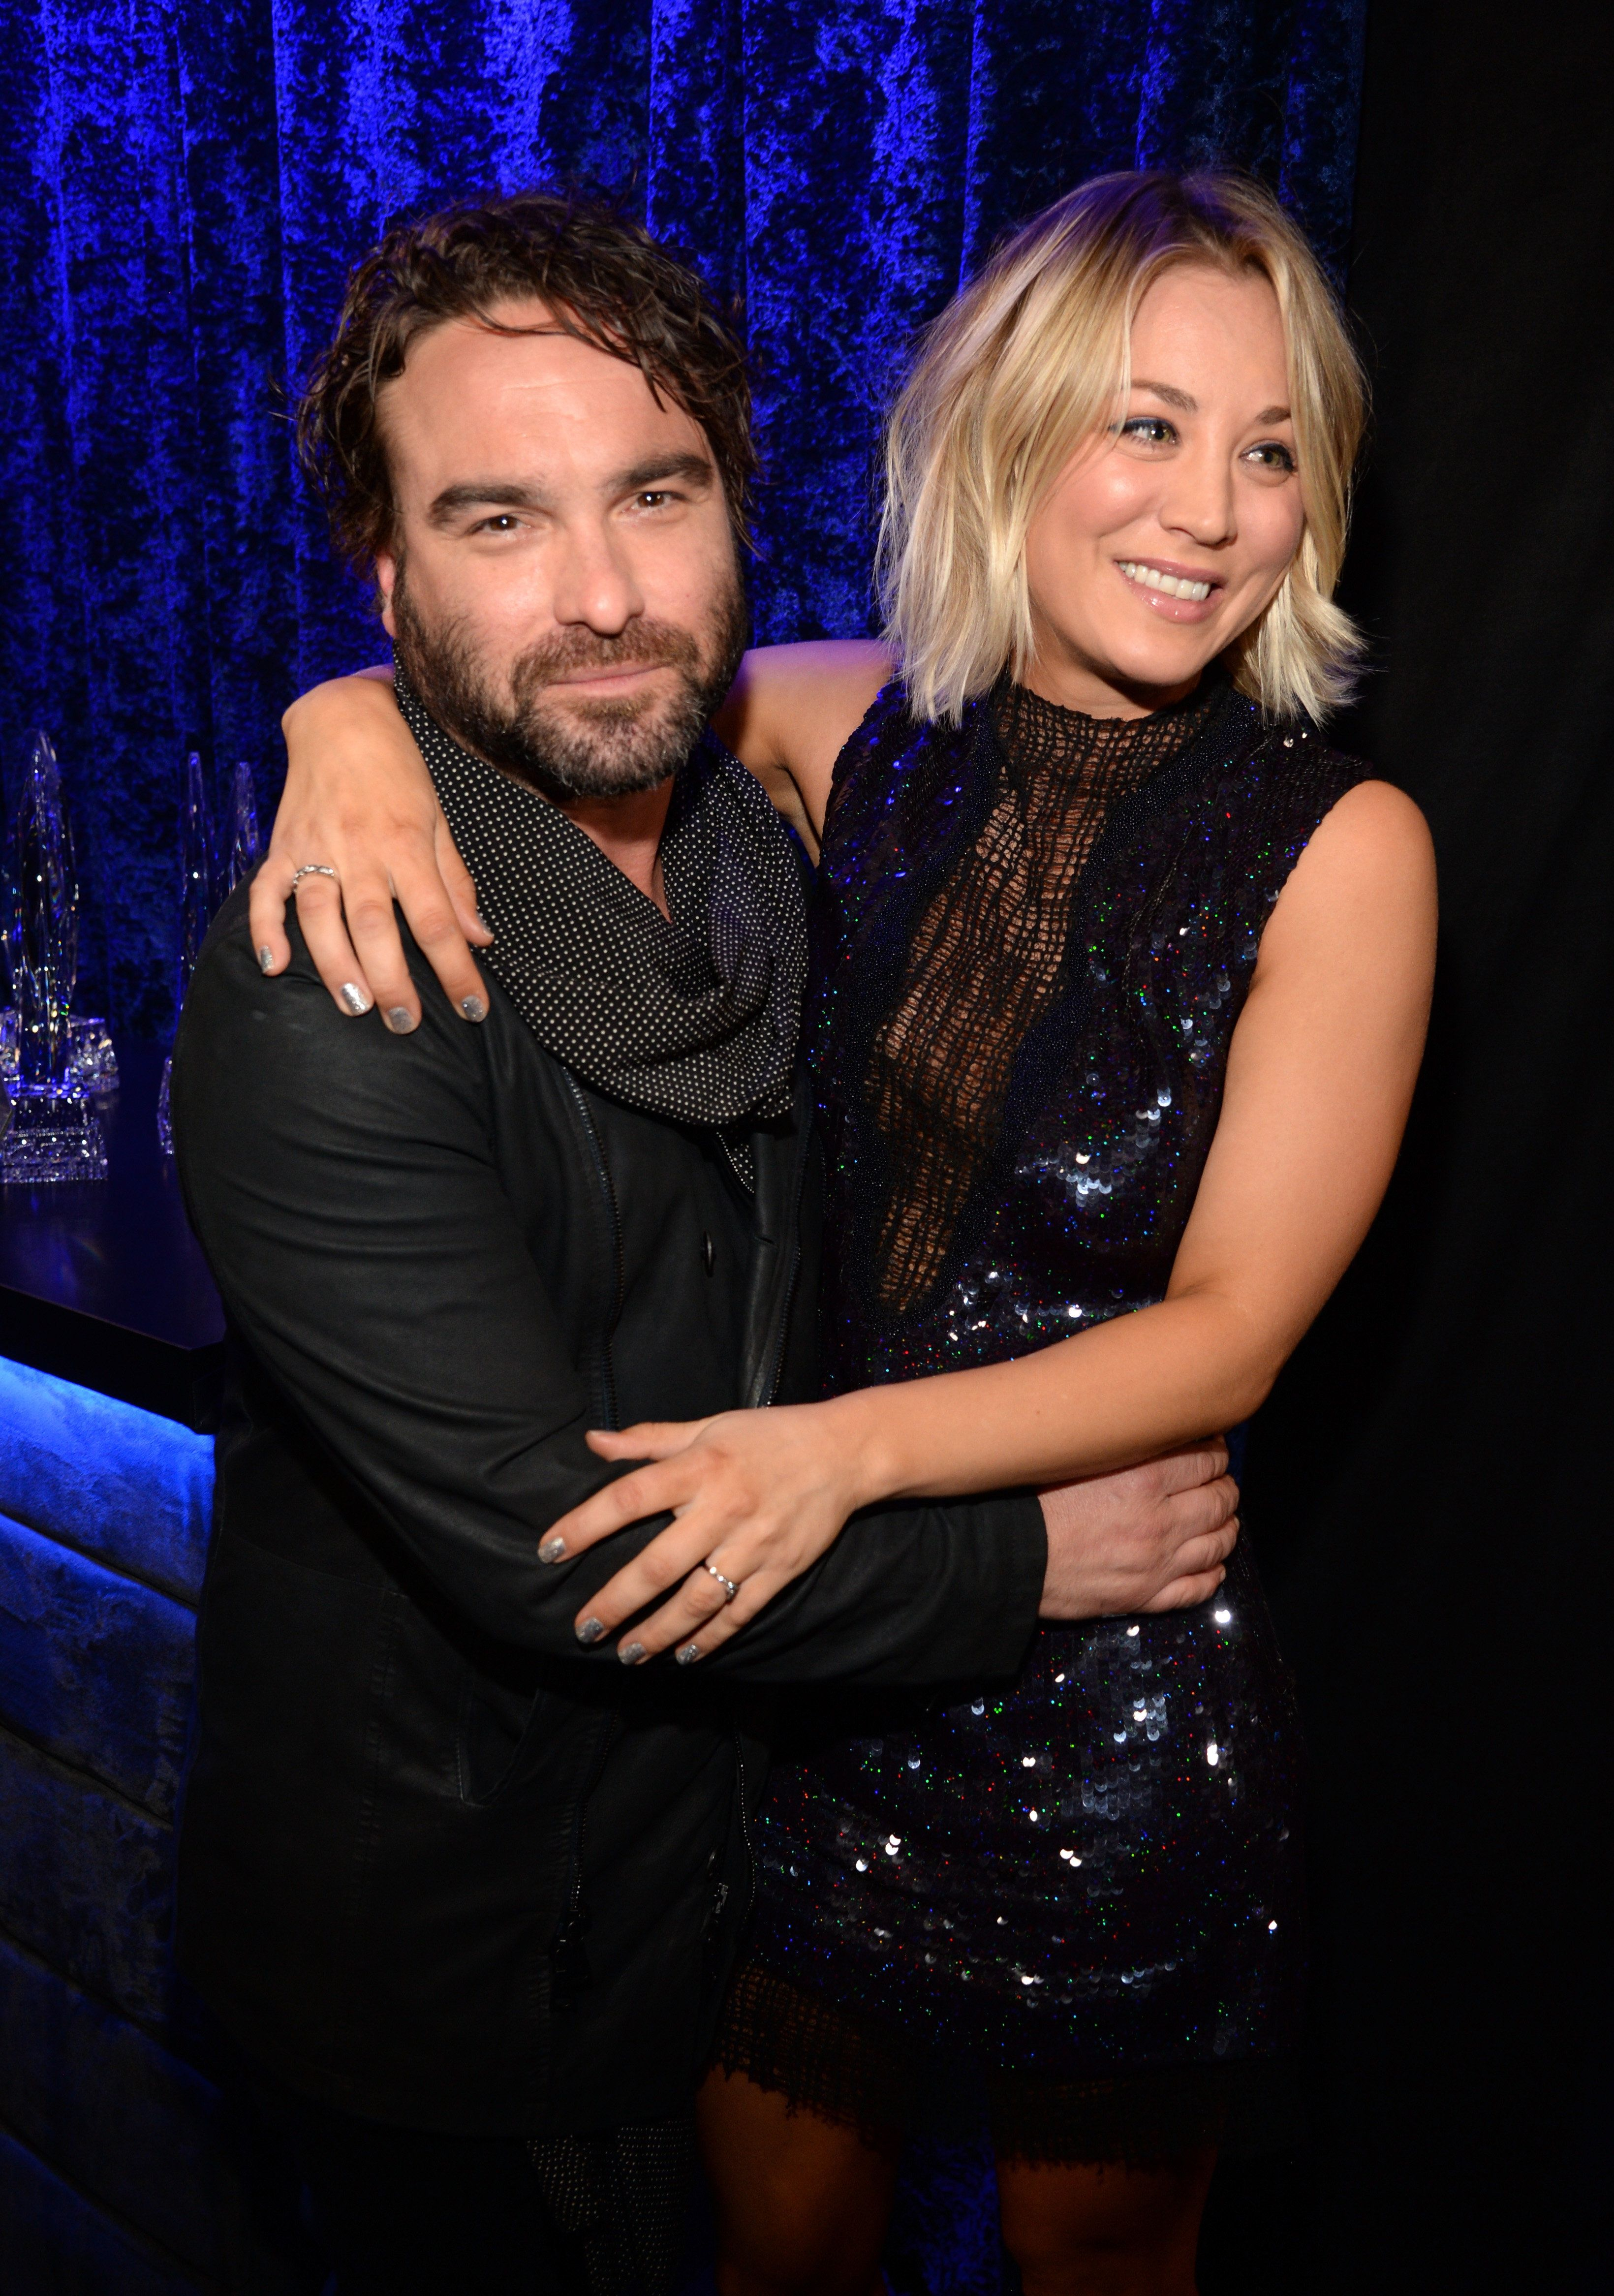 LOS ANGELES, CA - JANUARY 06:  Actors Johnny Galecki (L) and Kaley Cuoco attend the People's Choice Awards 2016 at Microsoft Theater on January 6, 2016 in Los Angeles, California.  (Photo by Kevin Mazur/WireImage)